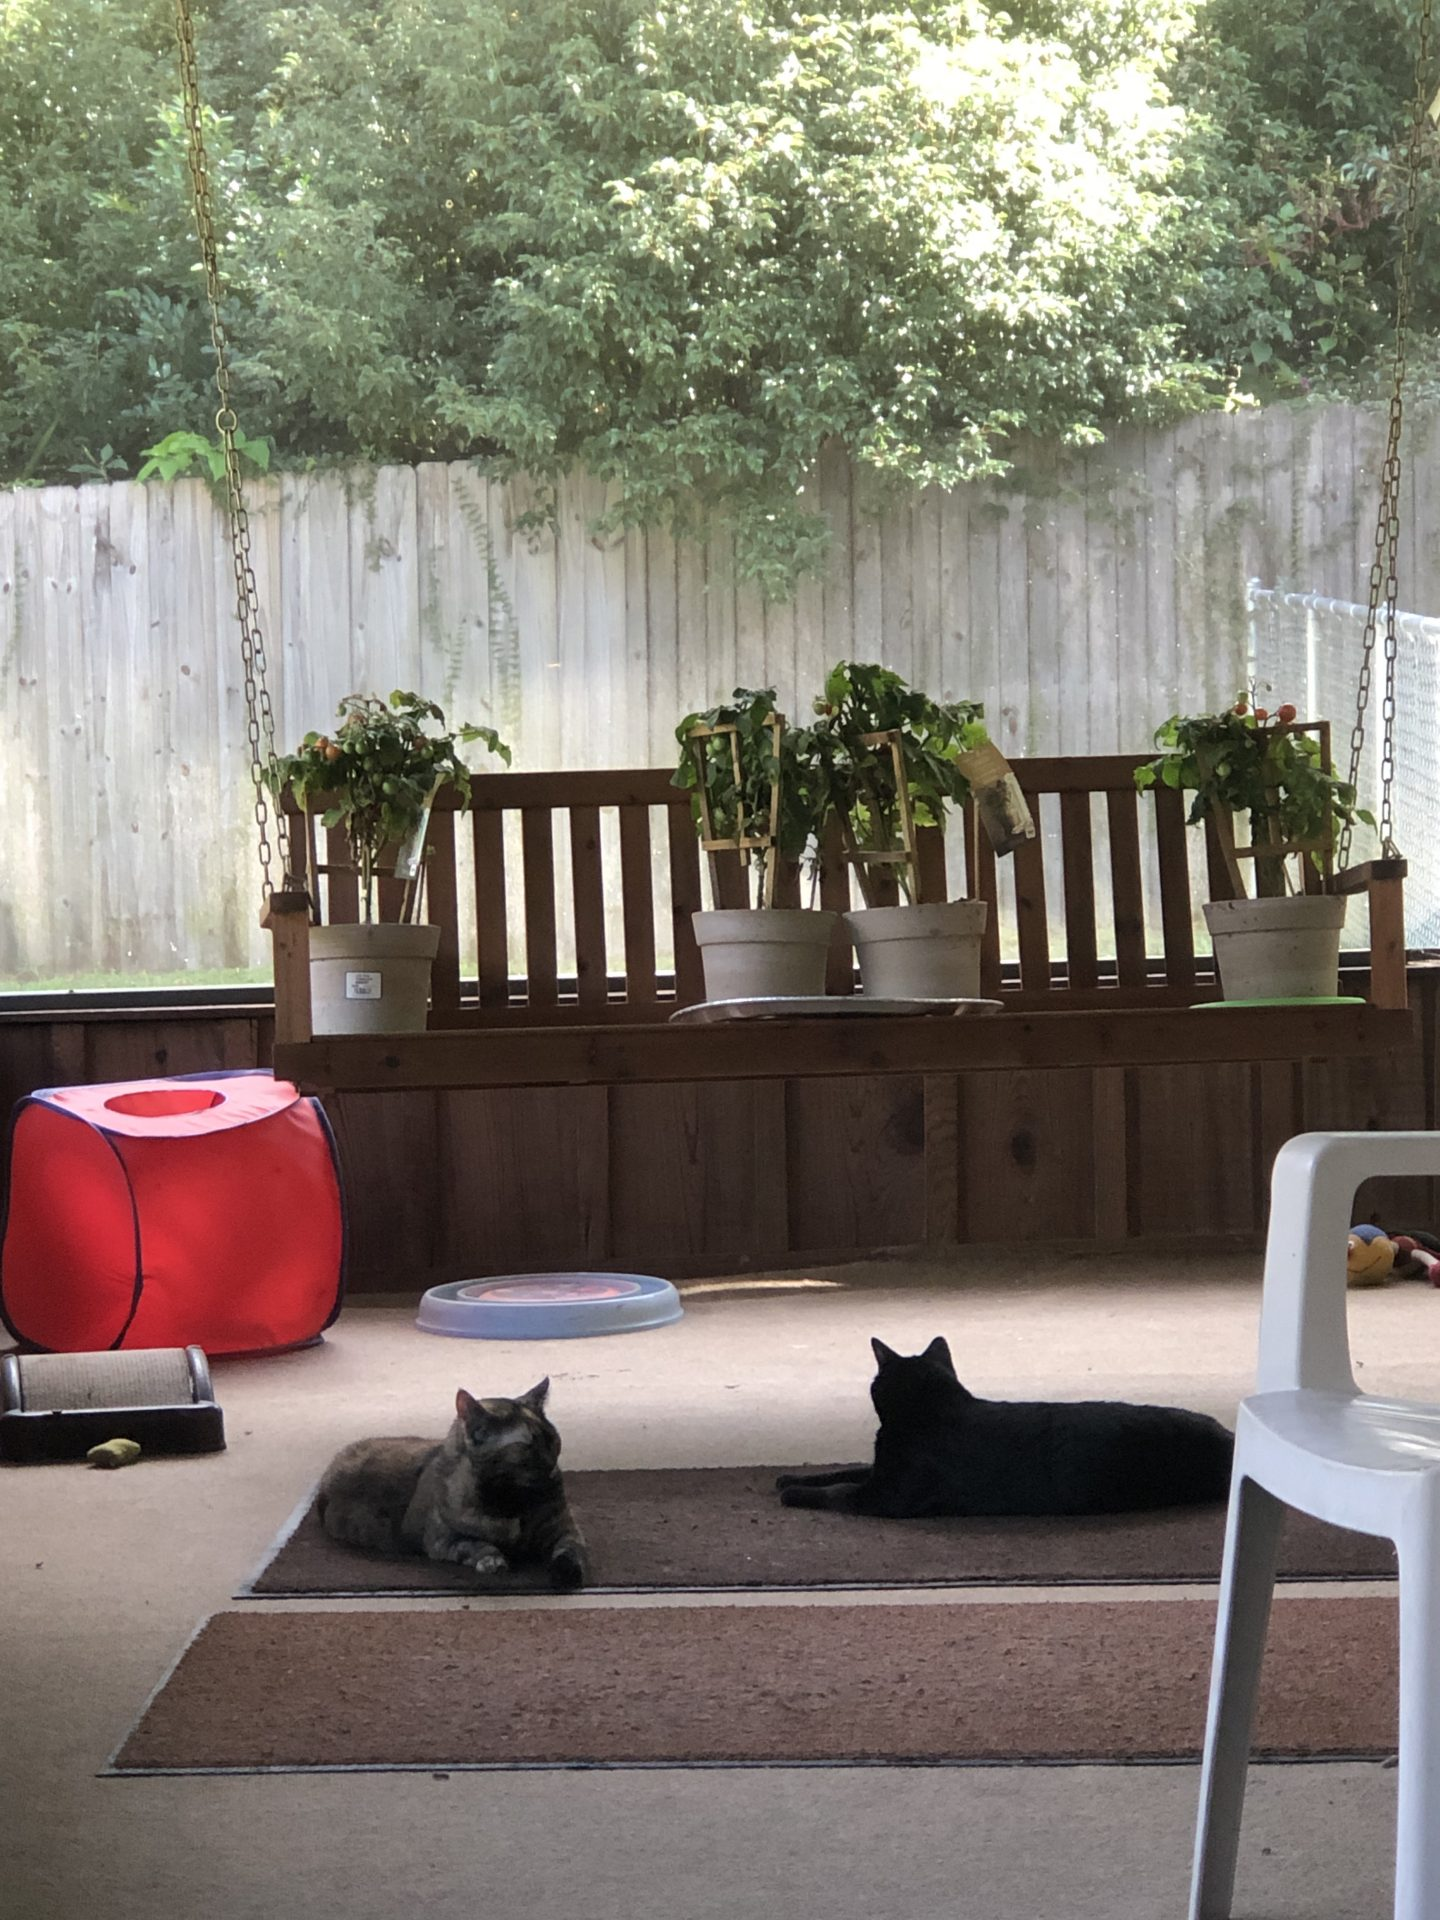 Sunday morning 81° Me & the kitty cats are sitting here on the screen porch Missing You and loving you ⭕️❌♥️